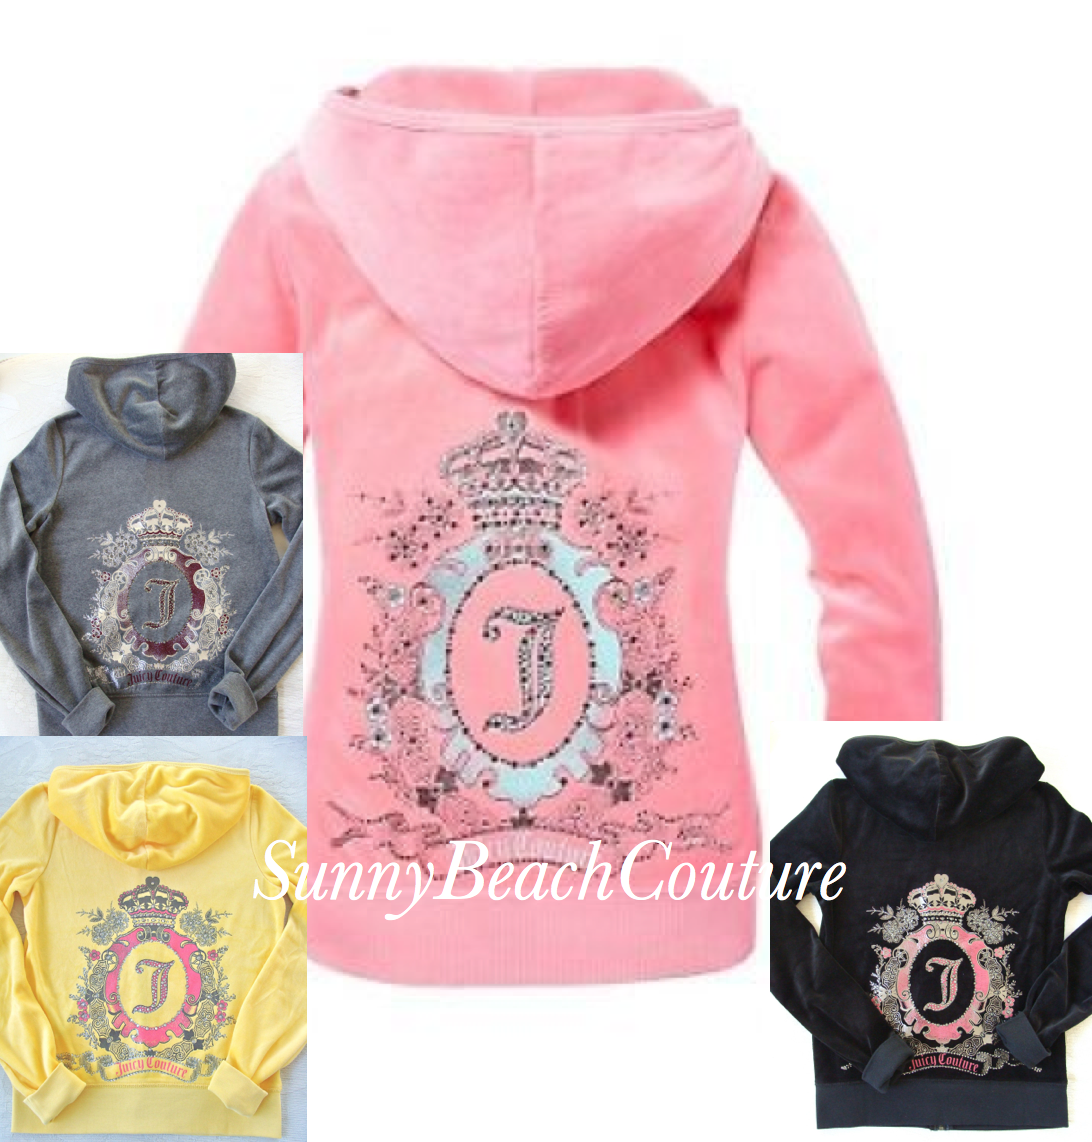 Juicy Couture Garden Cameo Tracksuit